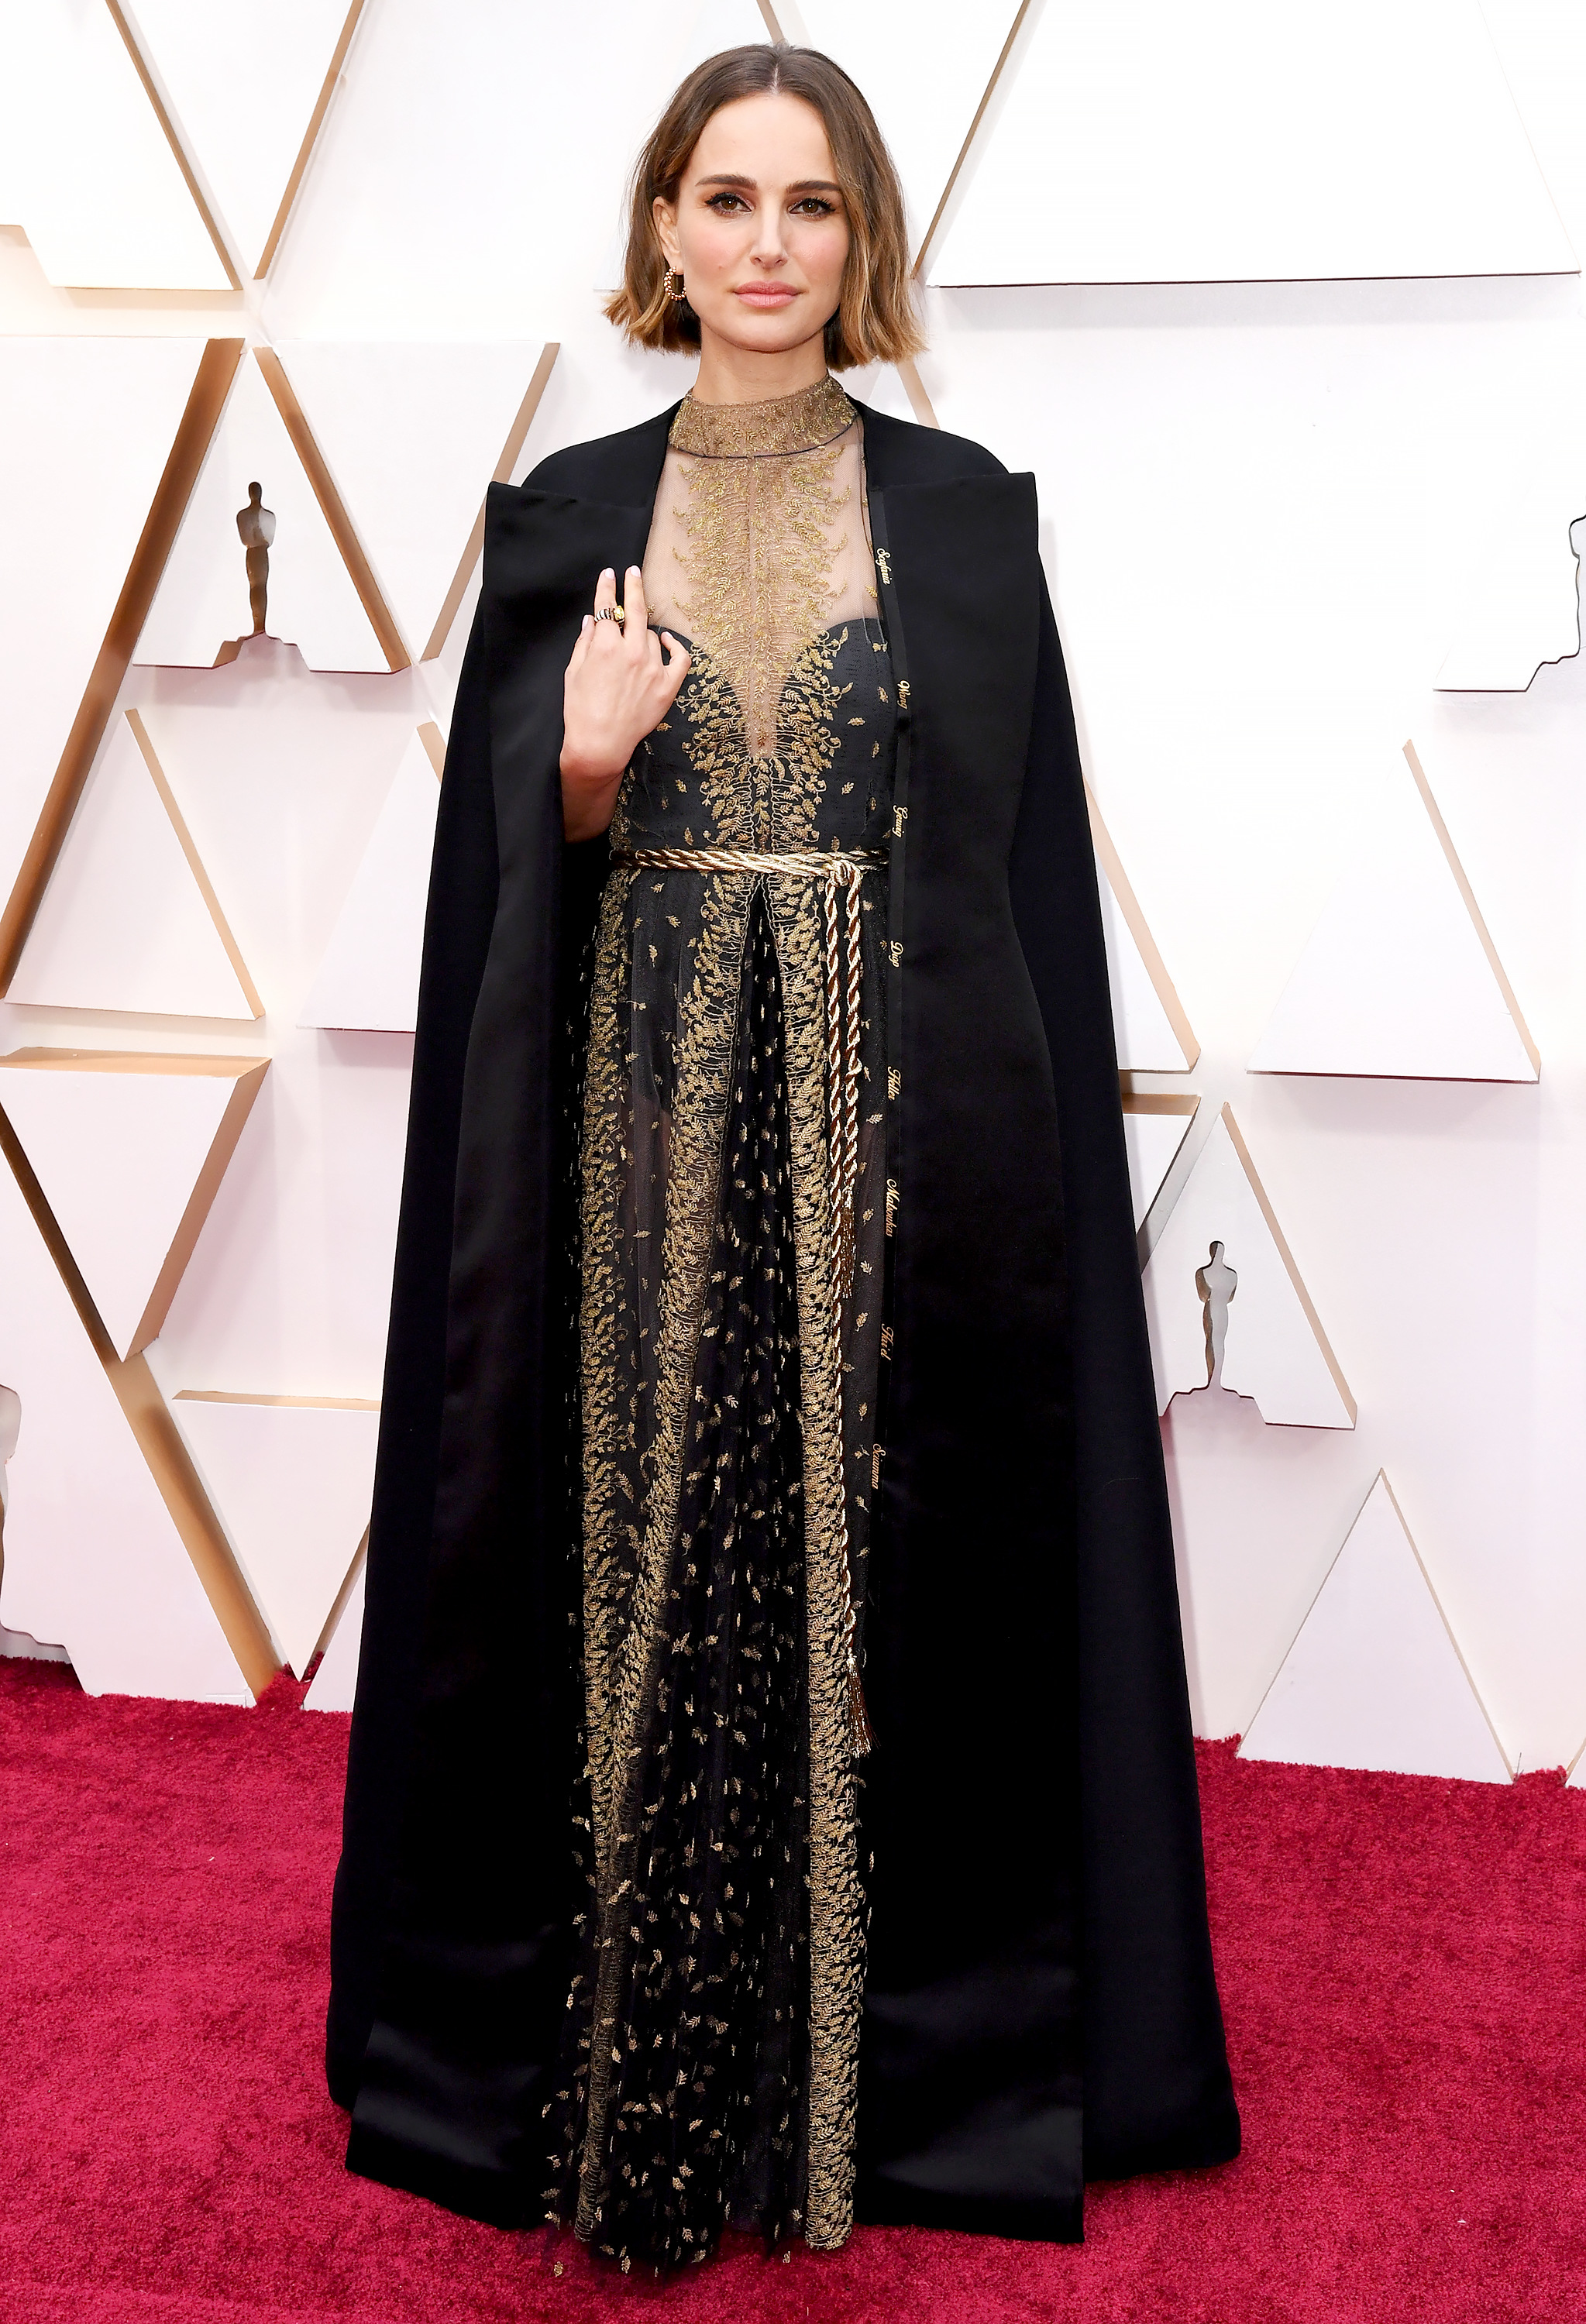 Natalie Portman Honors Snubbed Female Directors With Stunning Oscars Cape 2020